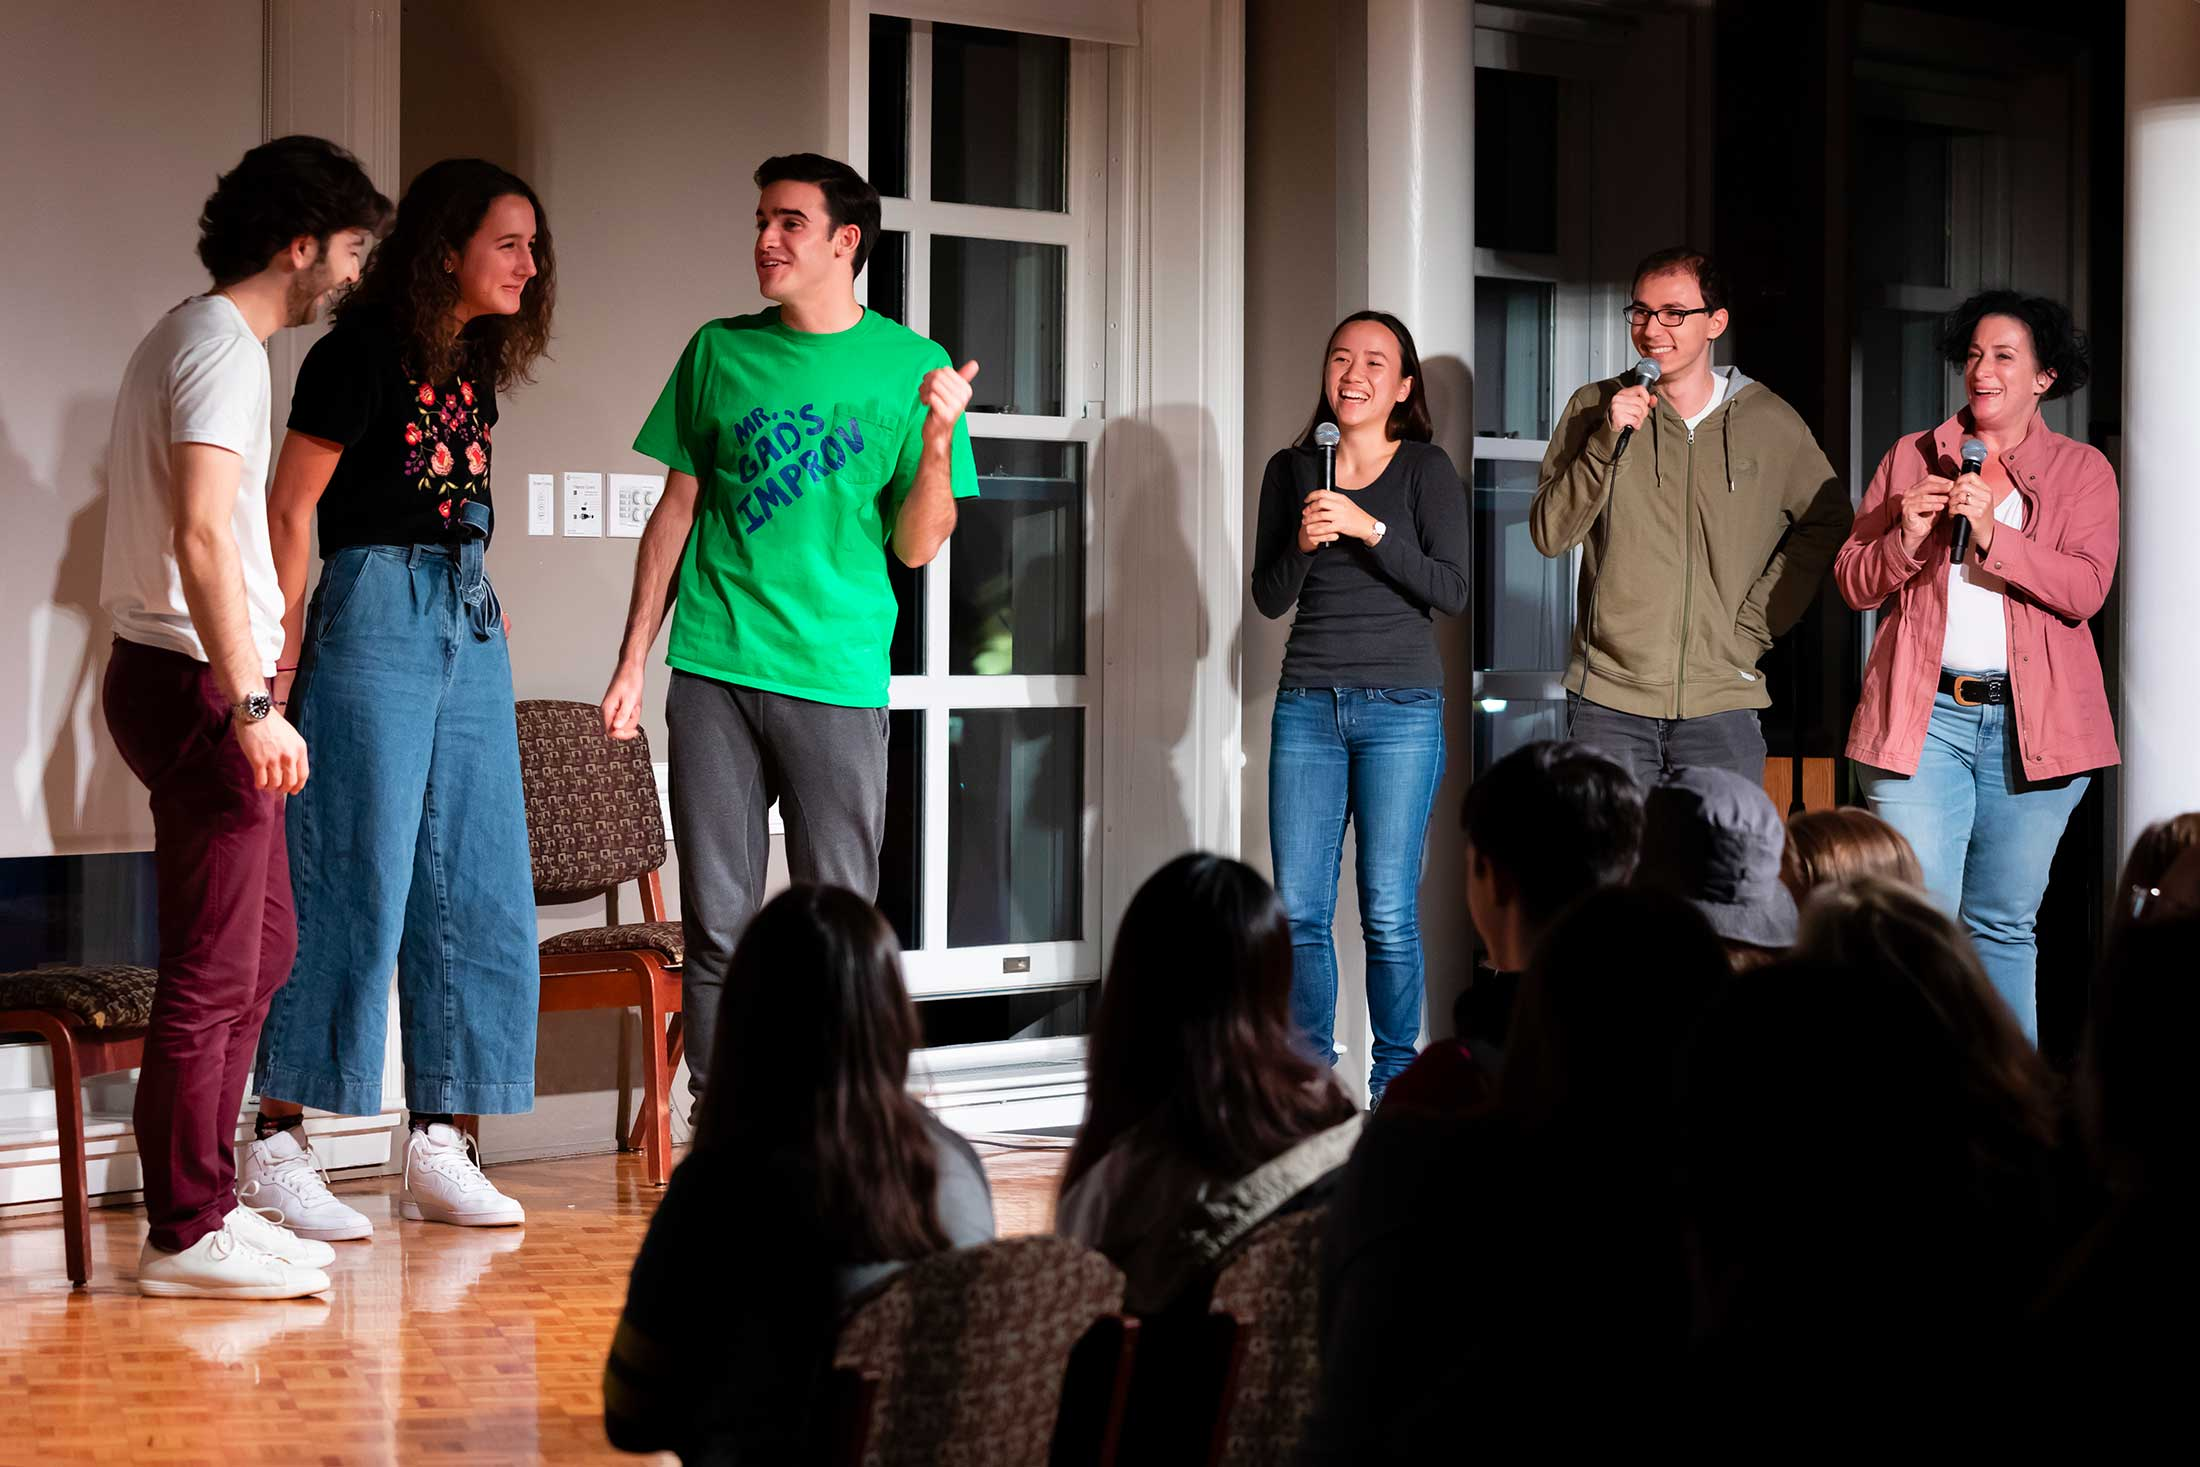 Students on stage performing improv